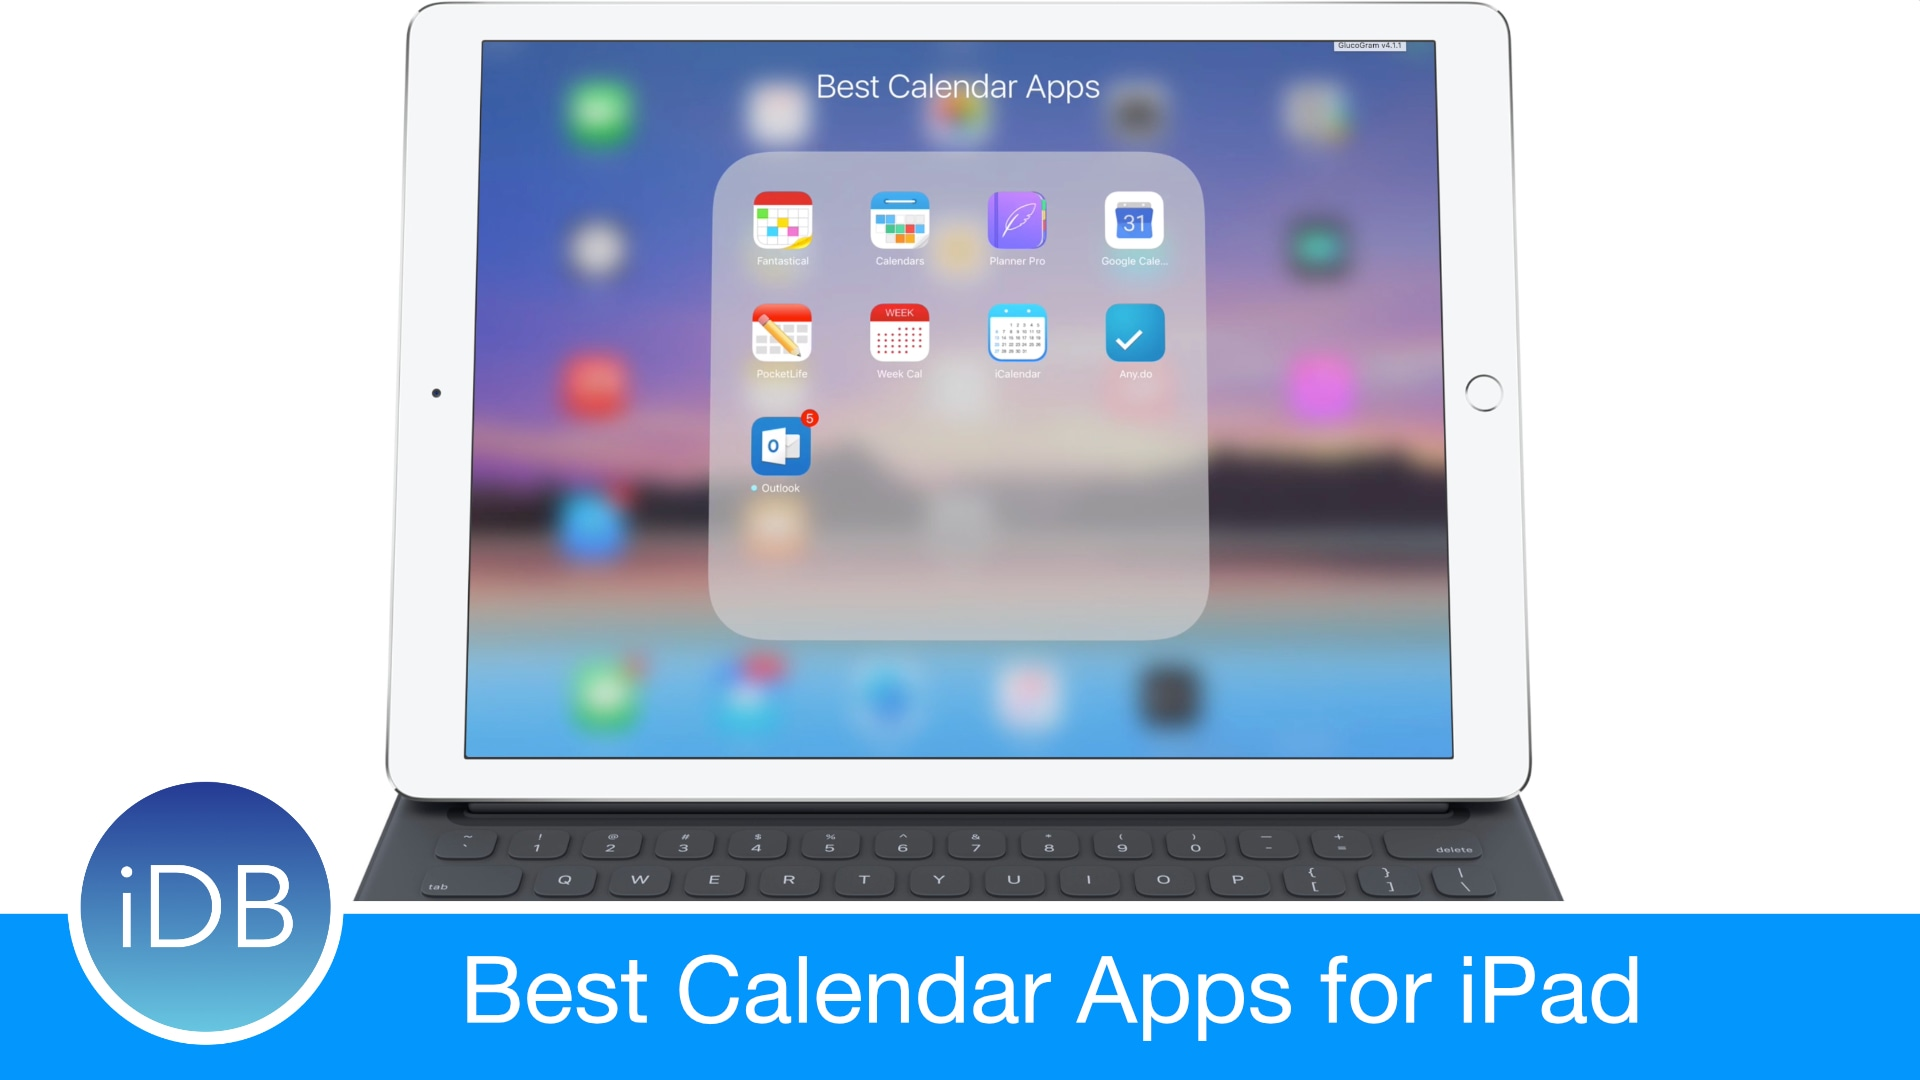 Best calendar apps for iPad